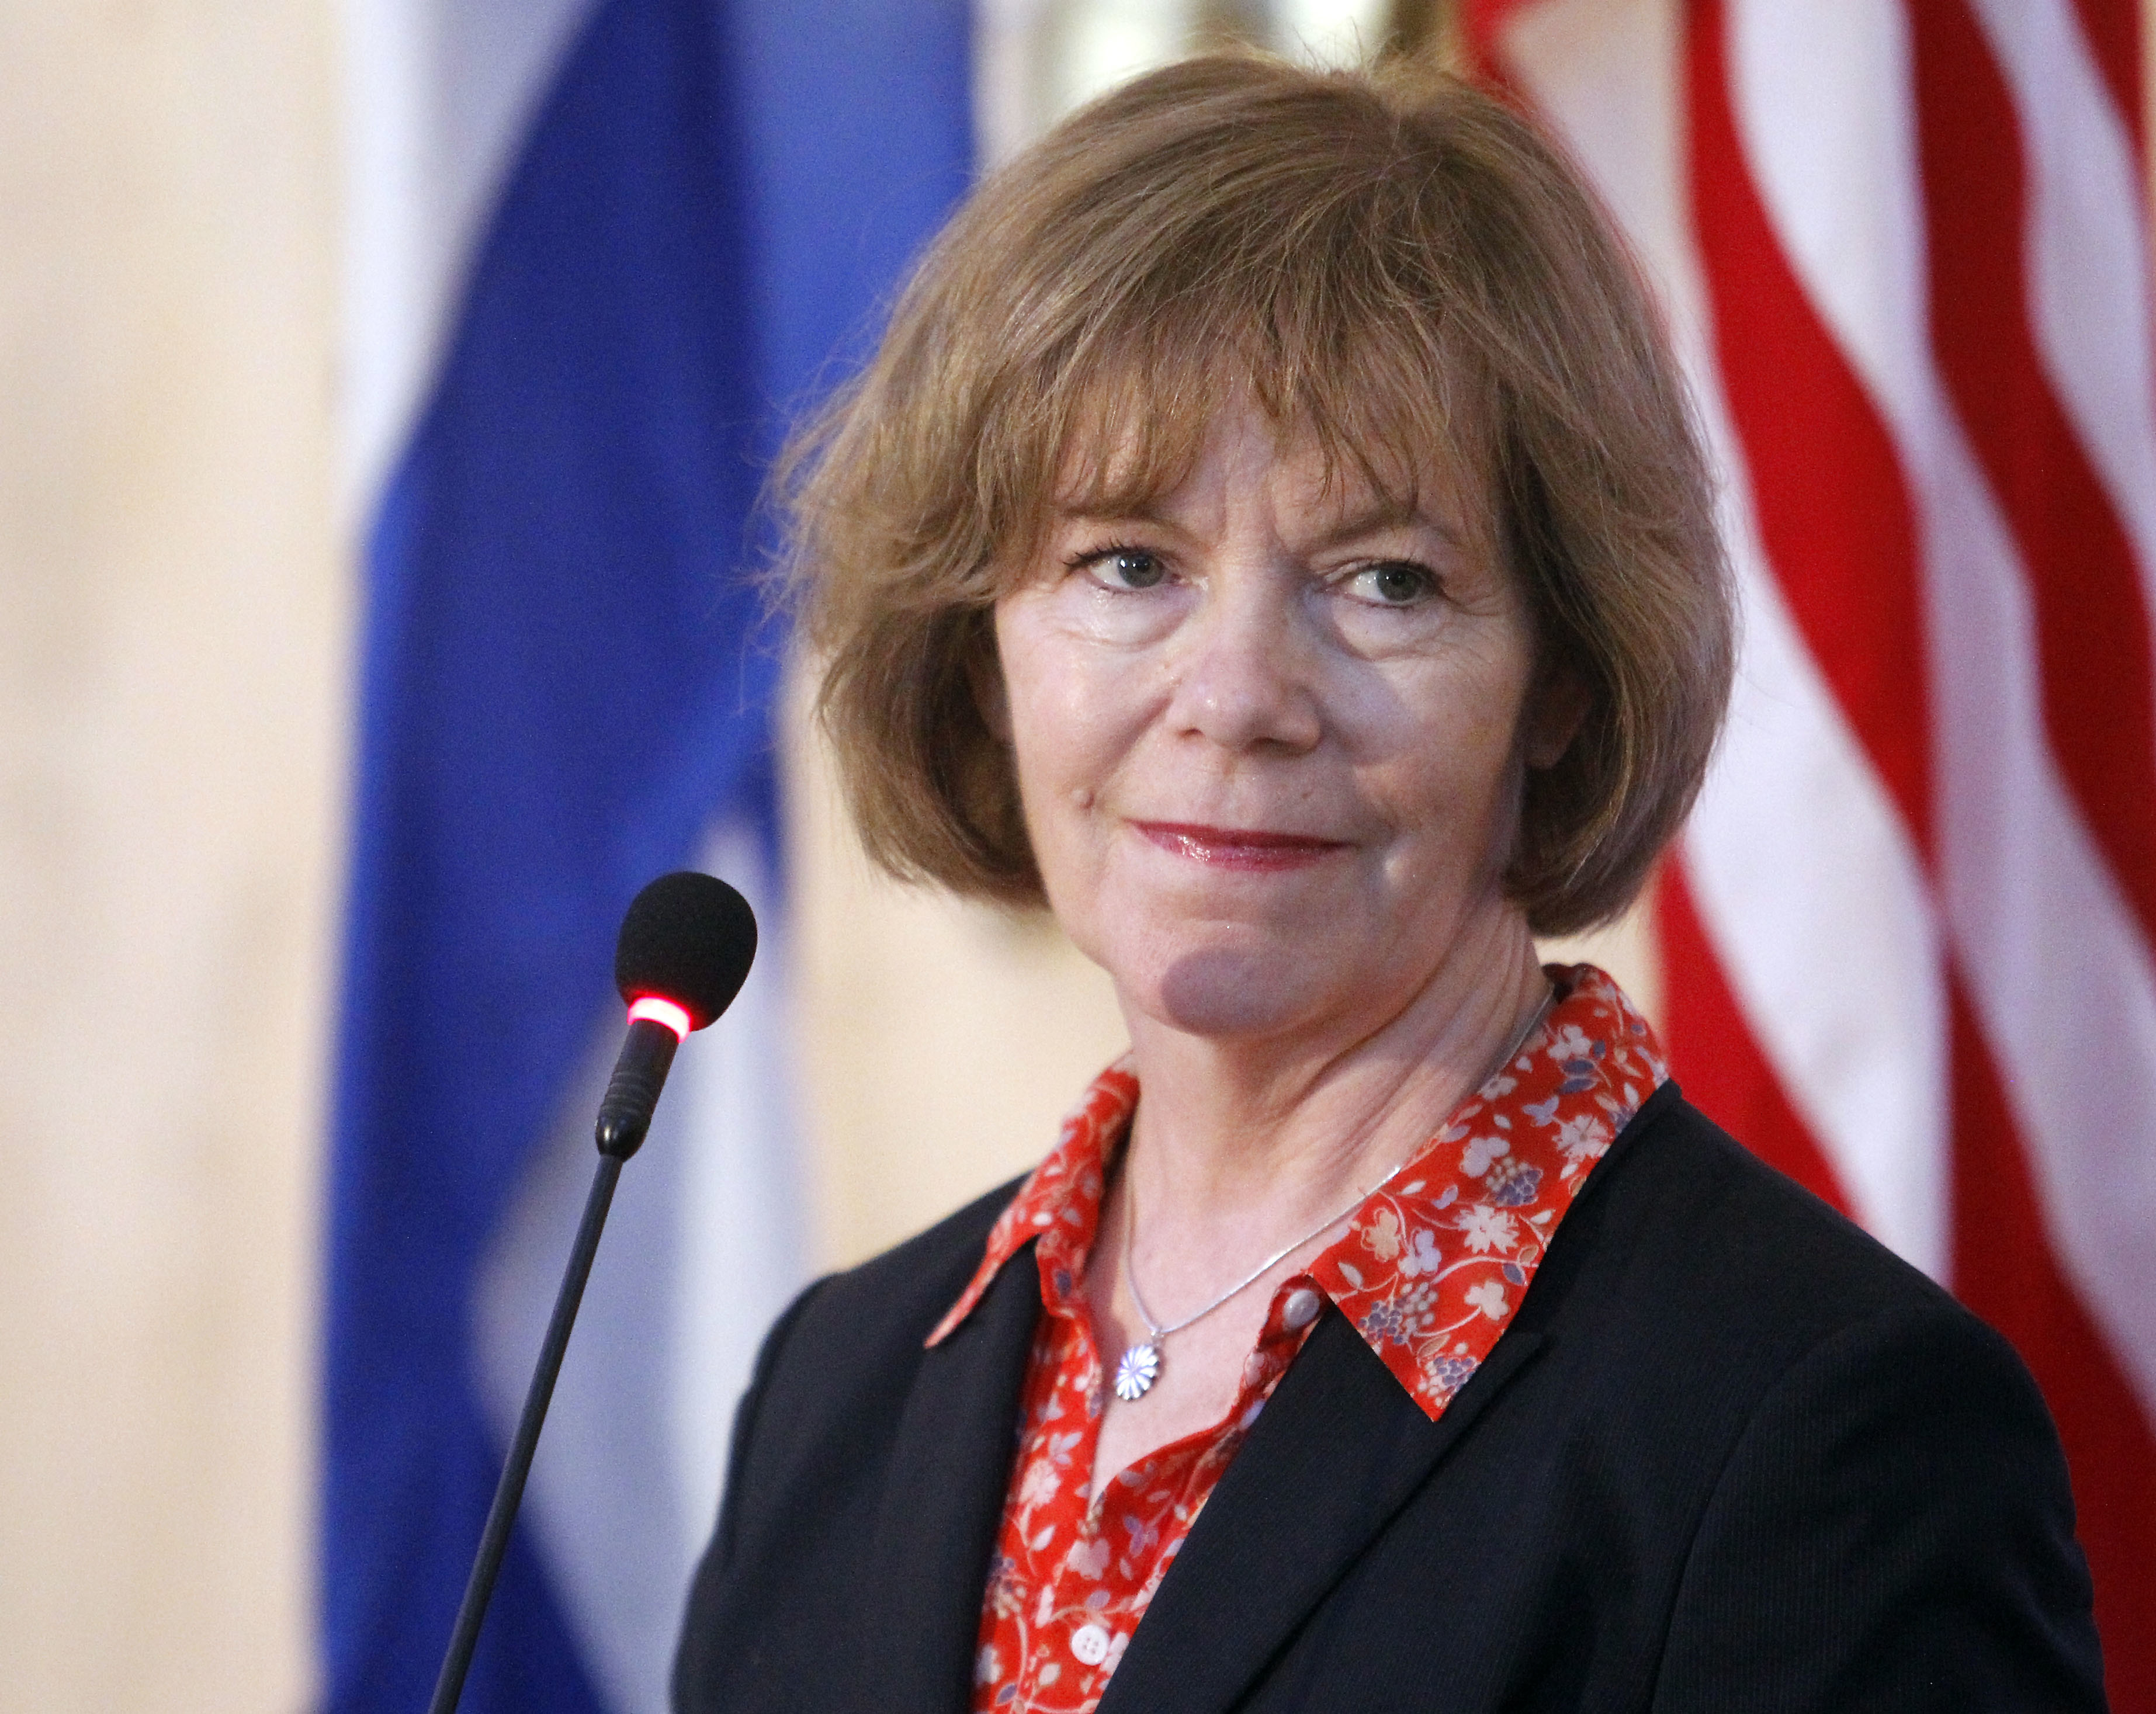 Tina Smith, Vice Governor of Minnesota looks on during a press conference as part of her official visit on June 22, 2017 in Havanna, Cuba.